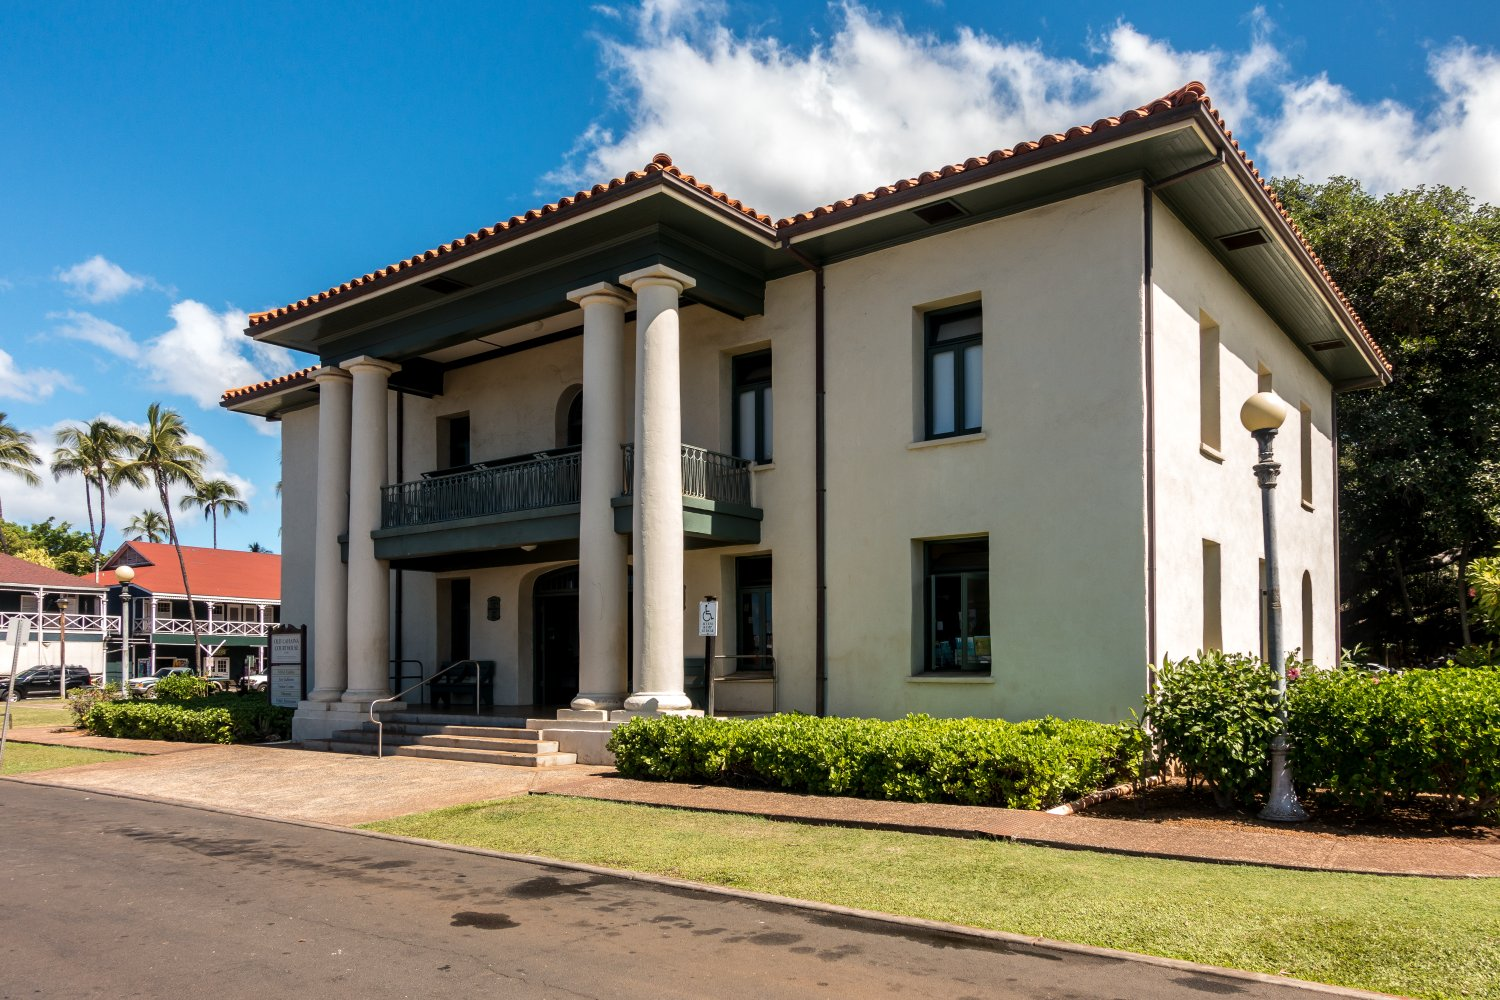 Maui, Lahaina, Old Courthouse